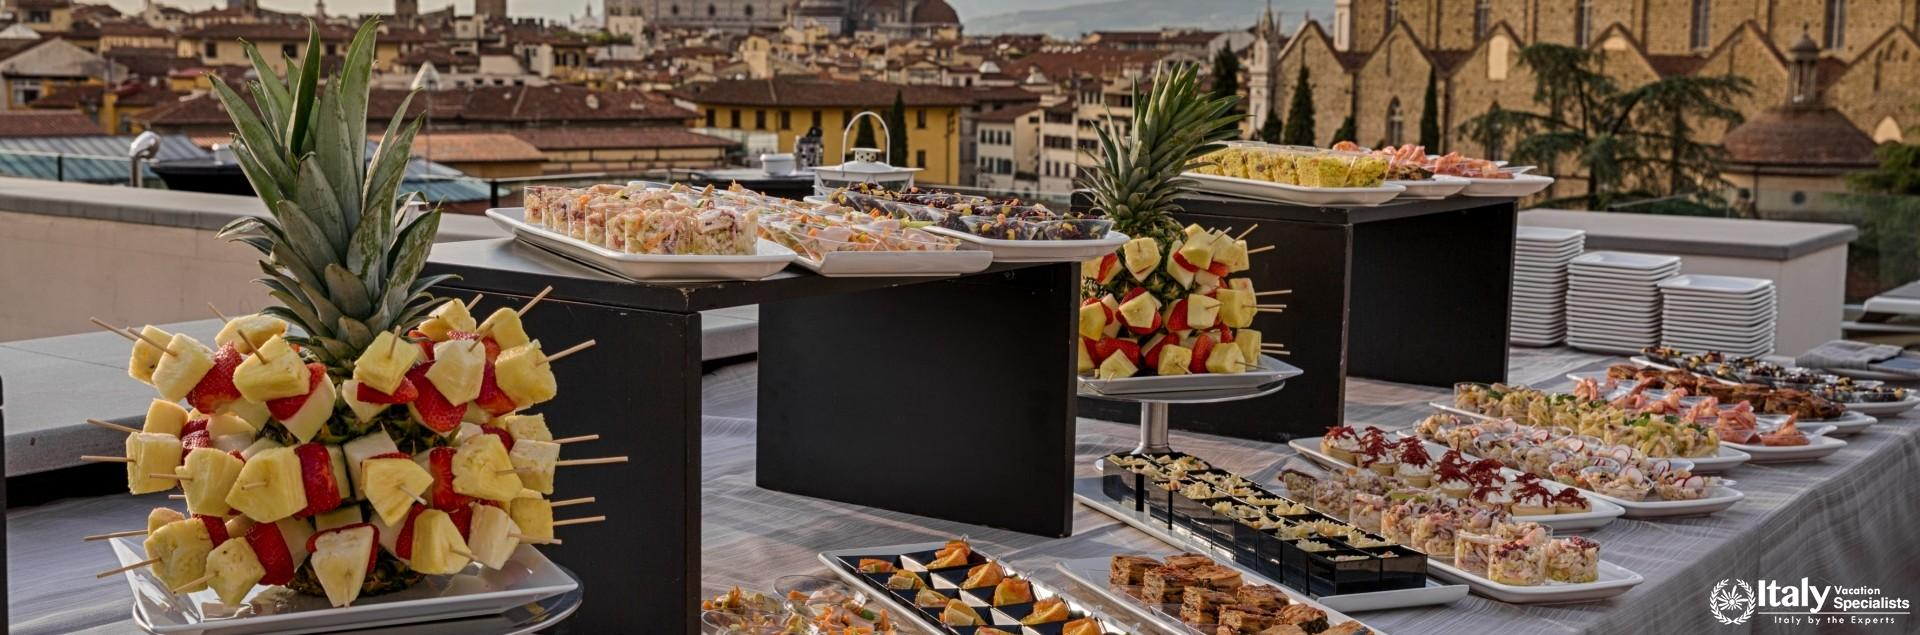 Food and eatables in Hotel Plaza Lucchesi